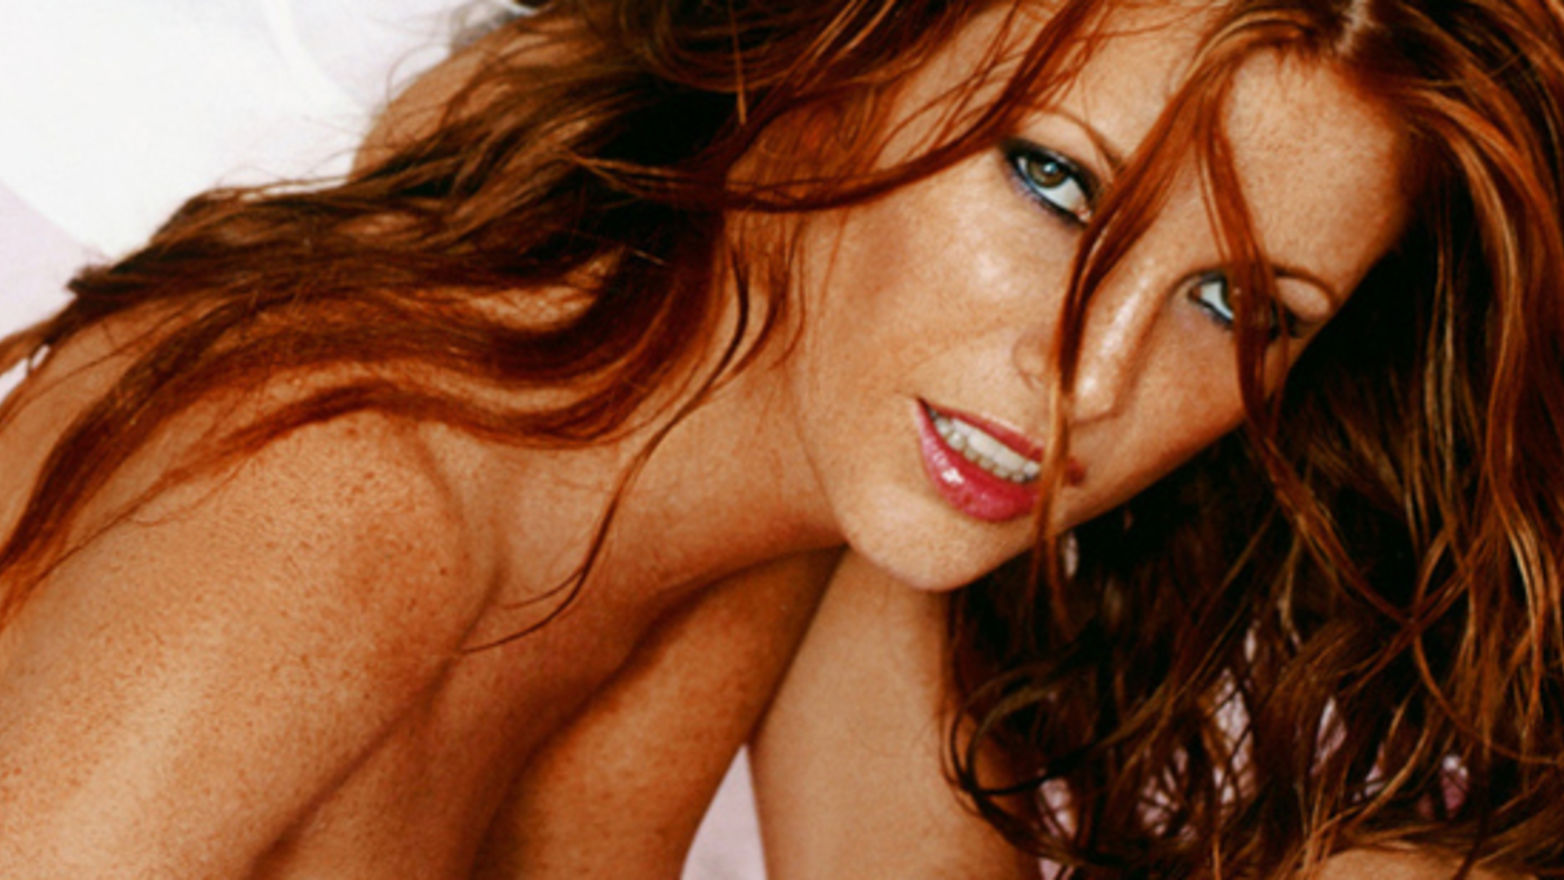 Angie Everhart Playboy angie everhart. porn photo - eporner